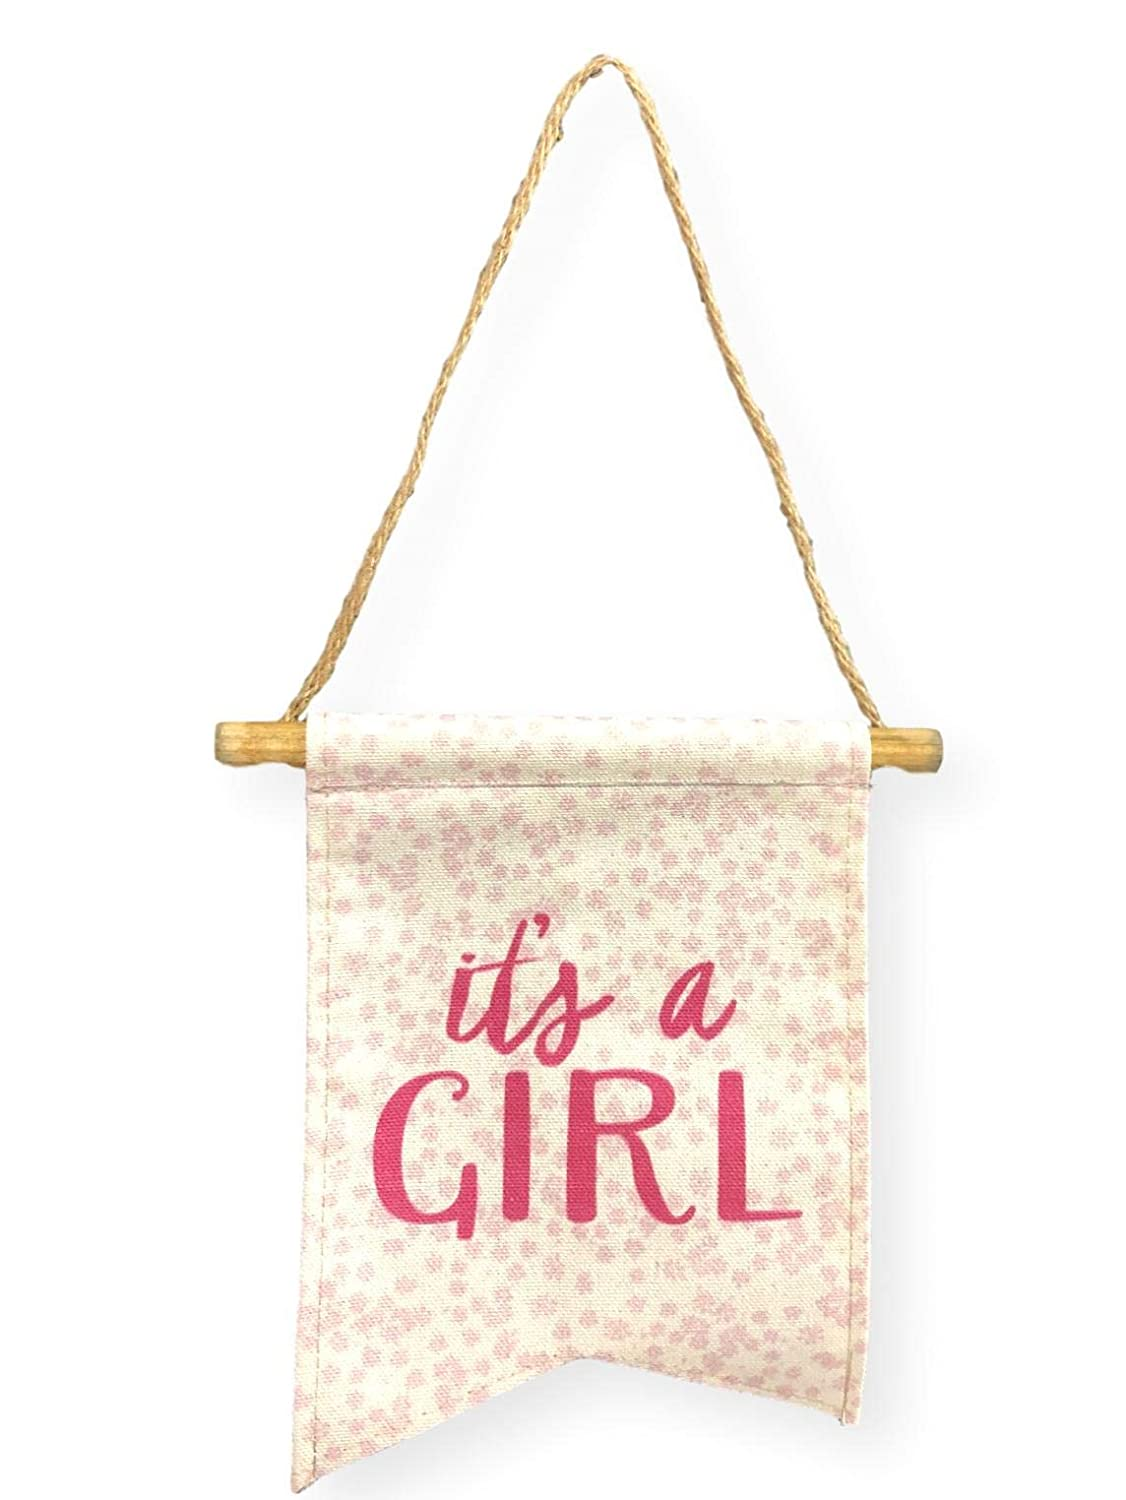 Tag Its a Girl Baby Canvas Banner Pink Lettering Nursery Wall Hanging Baby Shower Supplies Decorations Favors For Girls